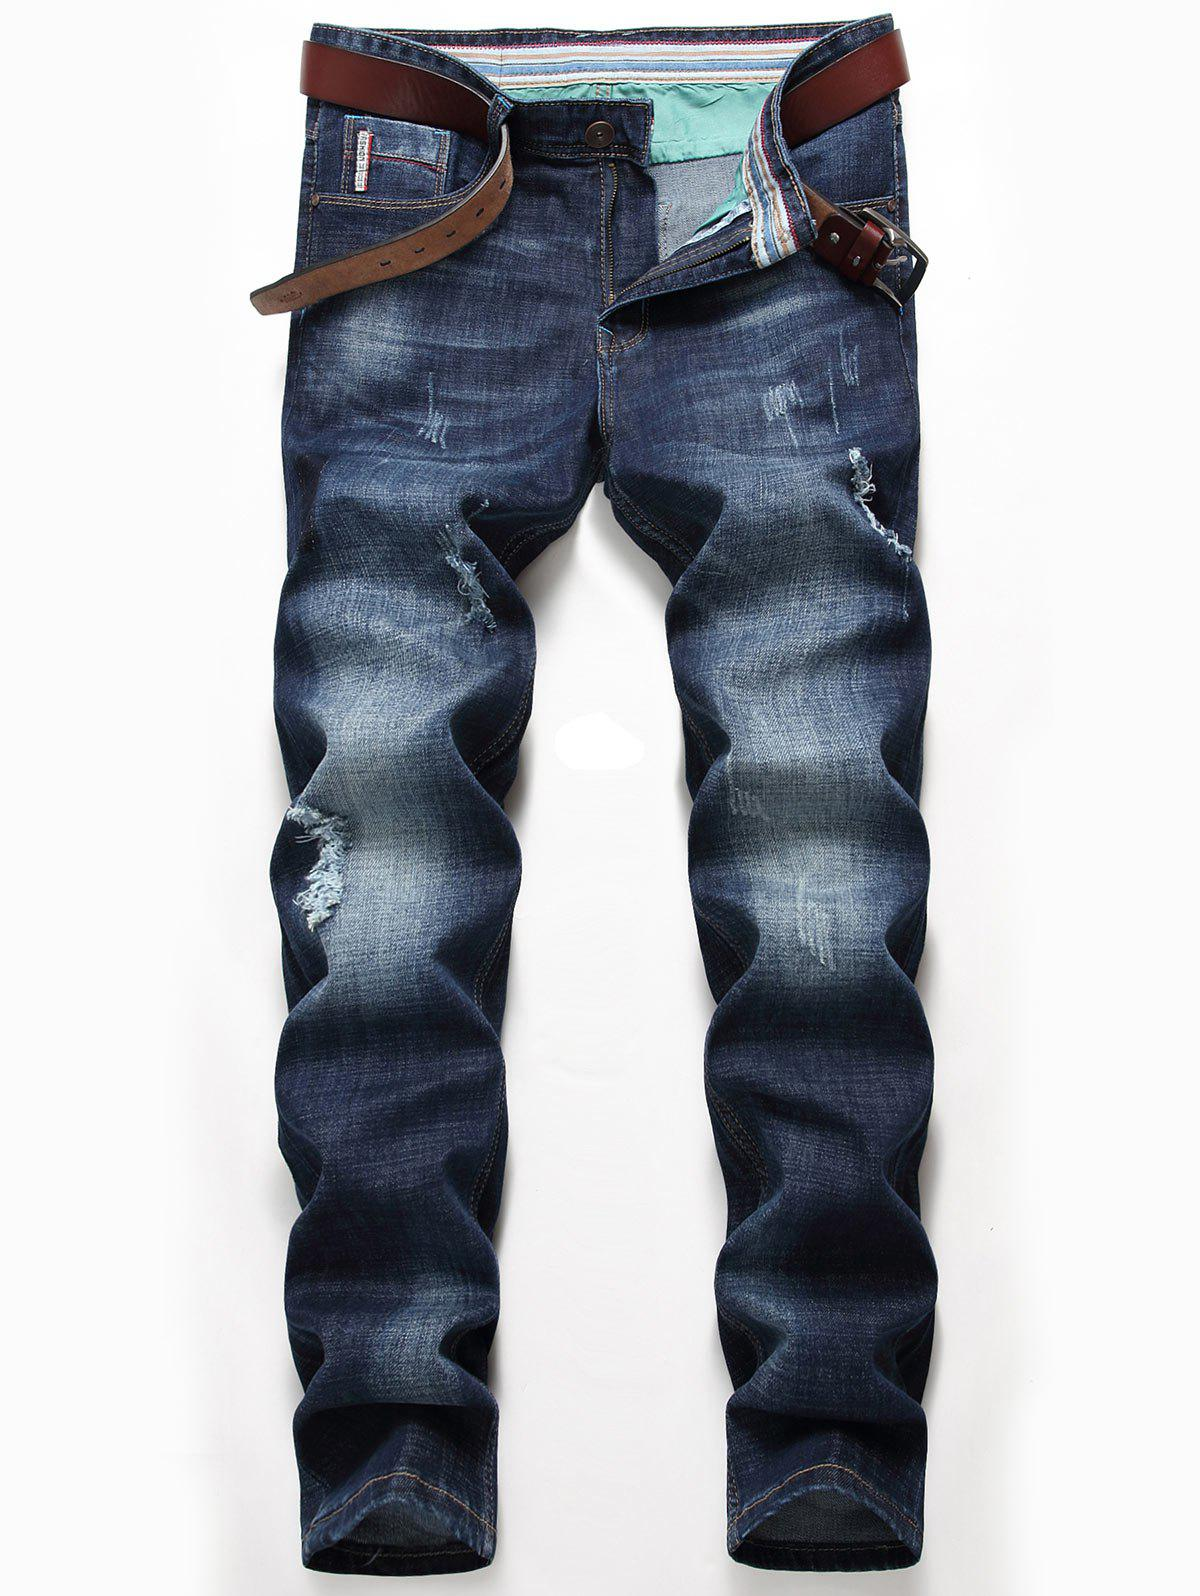 Whisker Pattern Distressed Faded Jeans 231351802